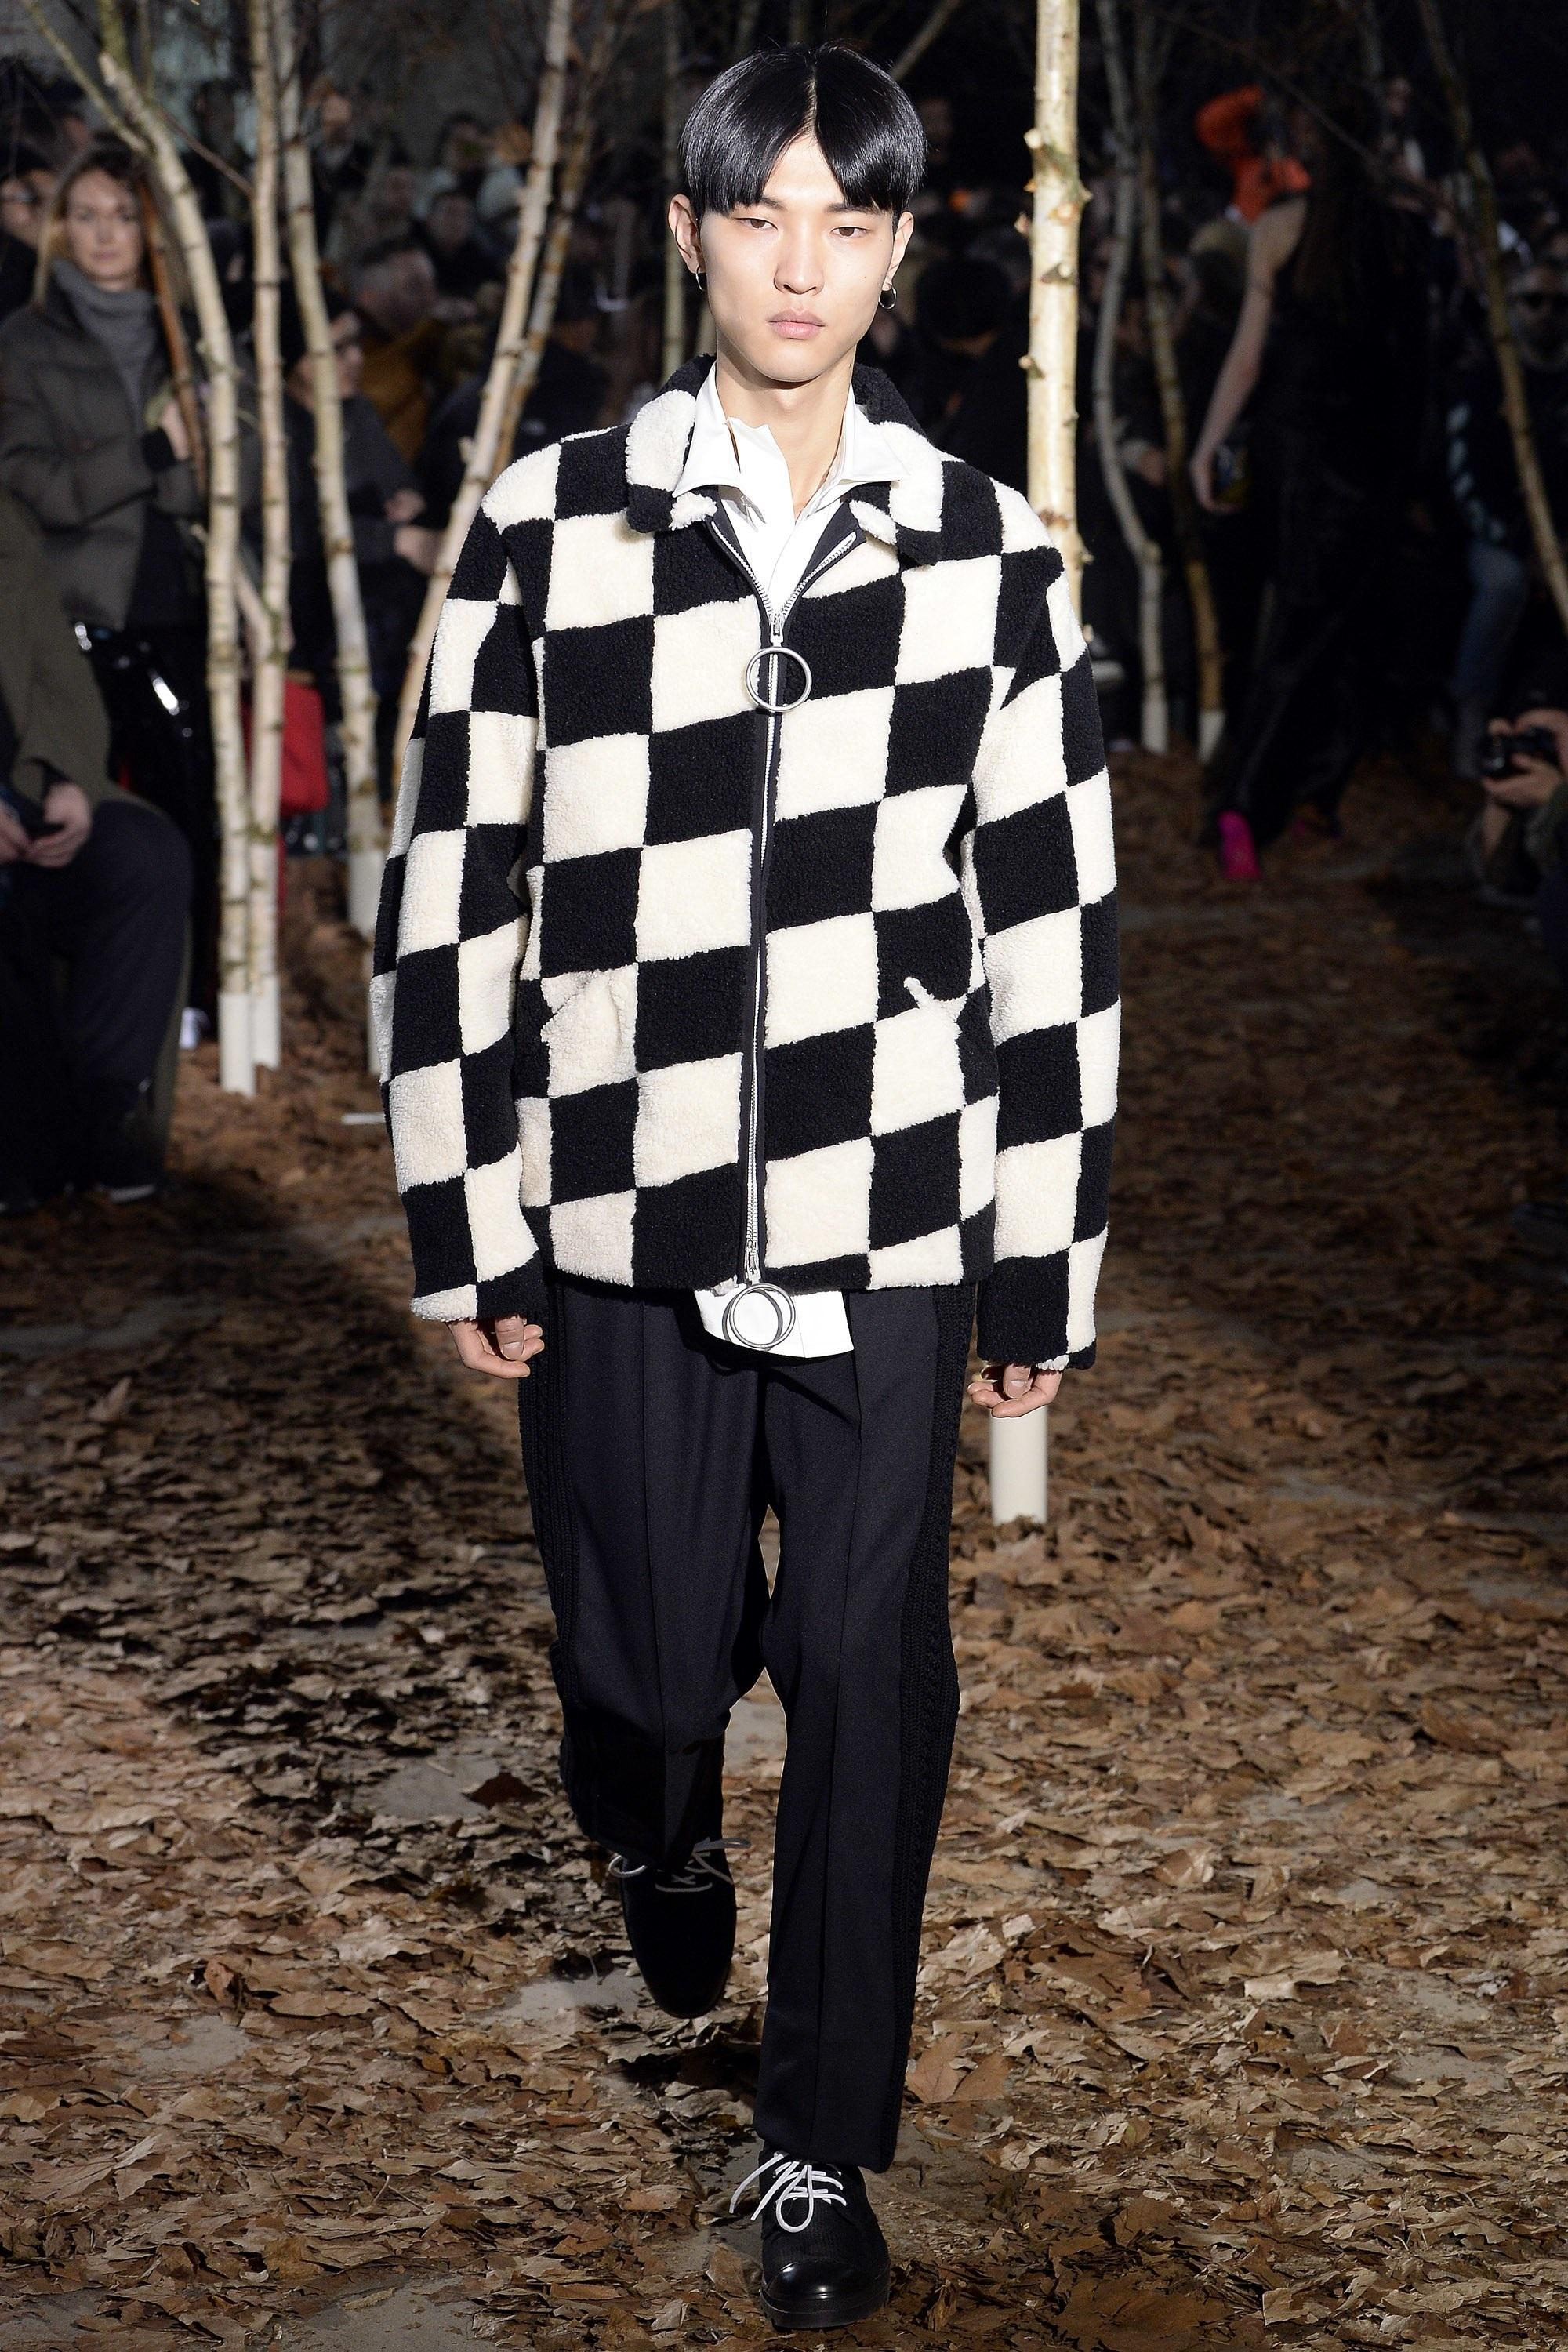 A model walks down a forest-like runway while wearing a boldly checkered black-and-white sherpa fleece jacket and black trousers.